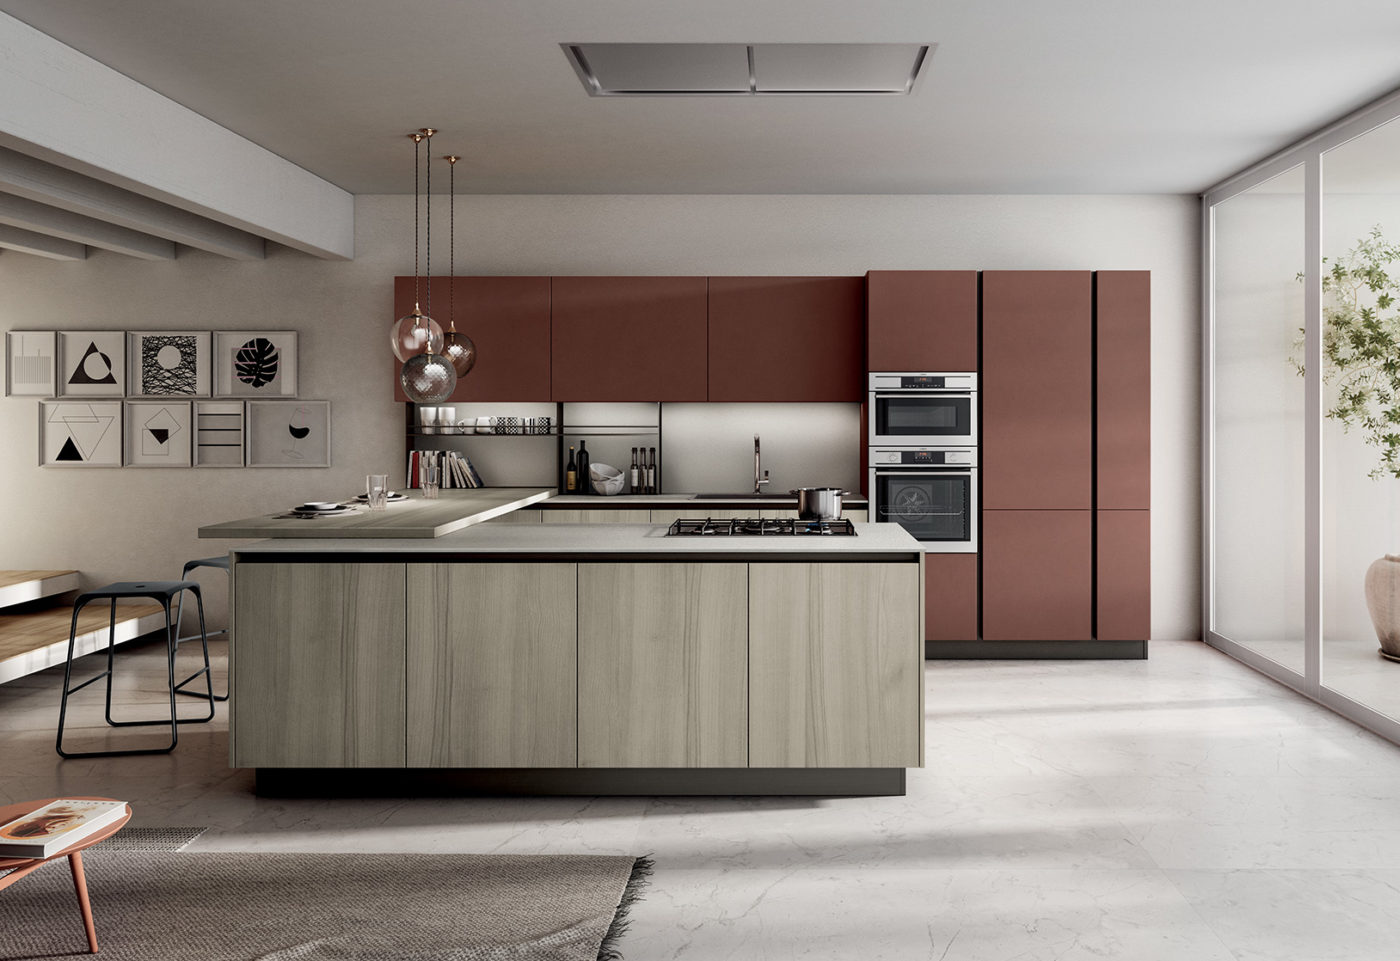 New finishes and compositions for Cloe by Arredo3, featuring versatility - 1